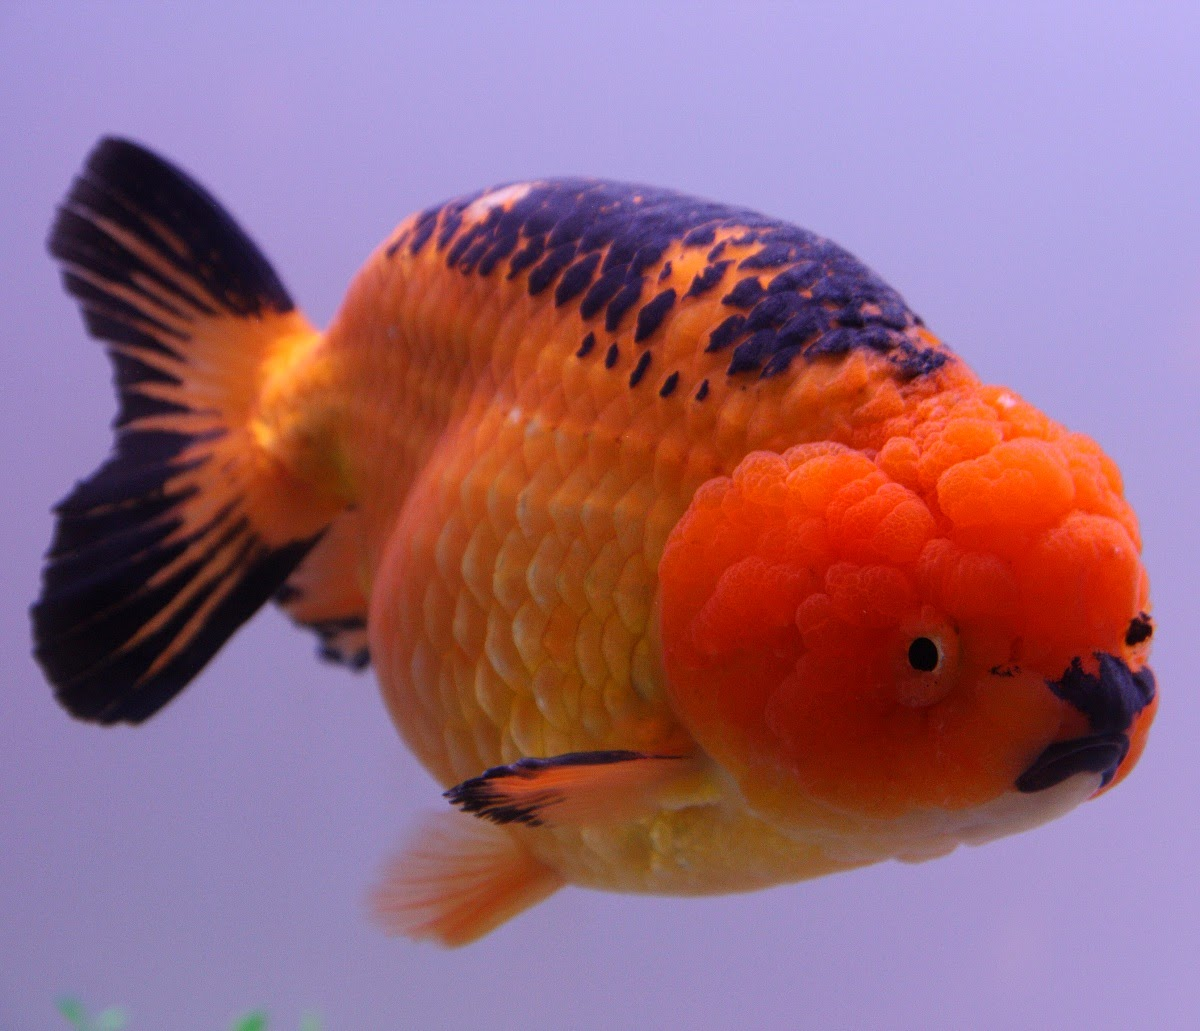 Blok888 top 10 most beautiful freshwater fish in the world 1 for Koi fish size